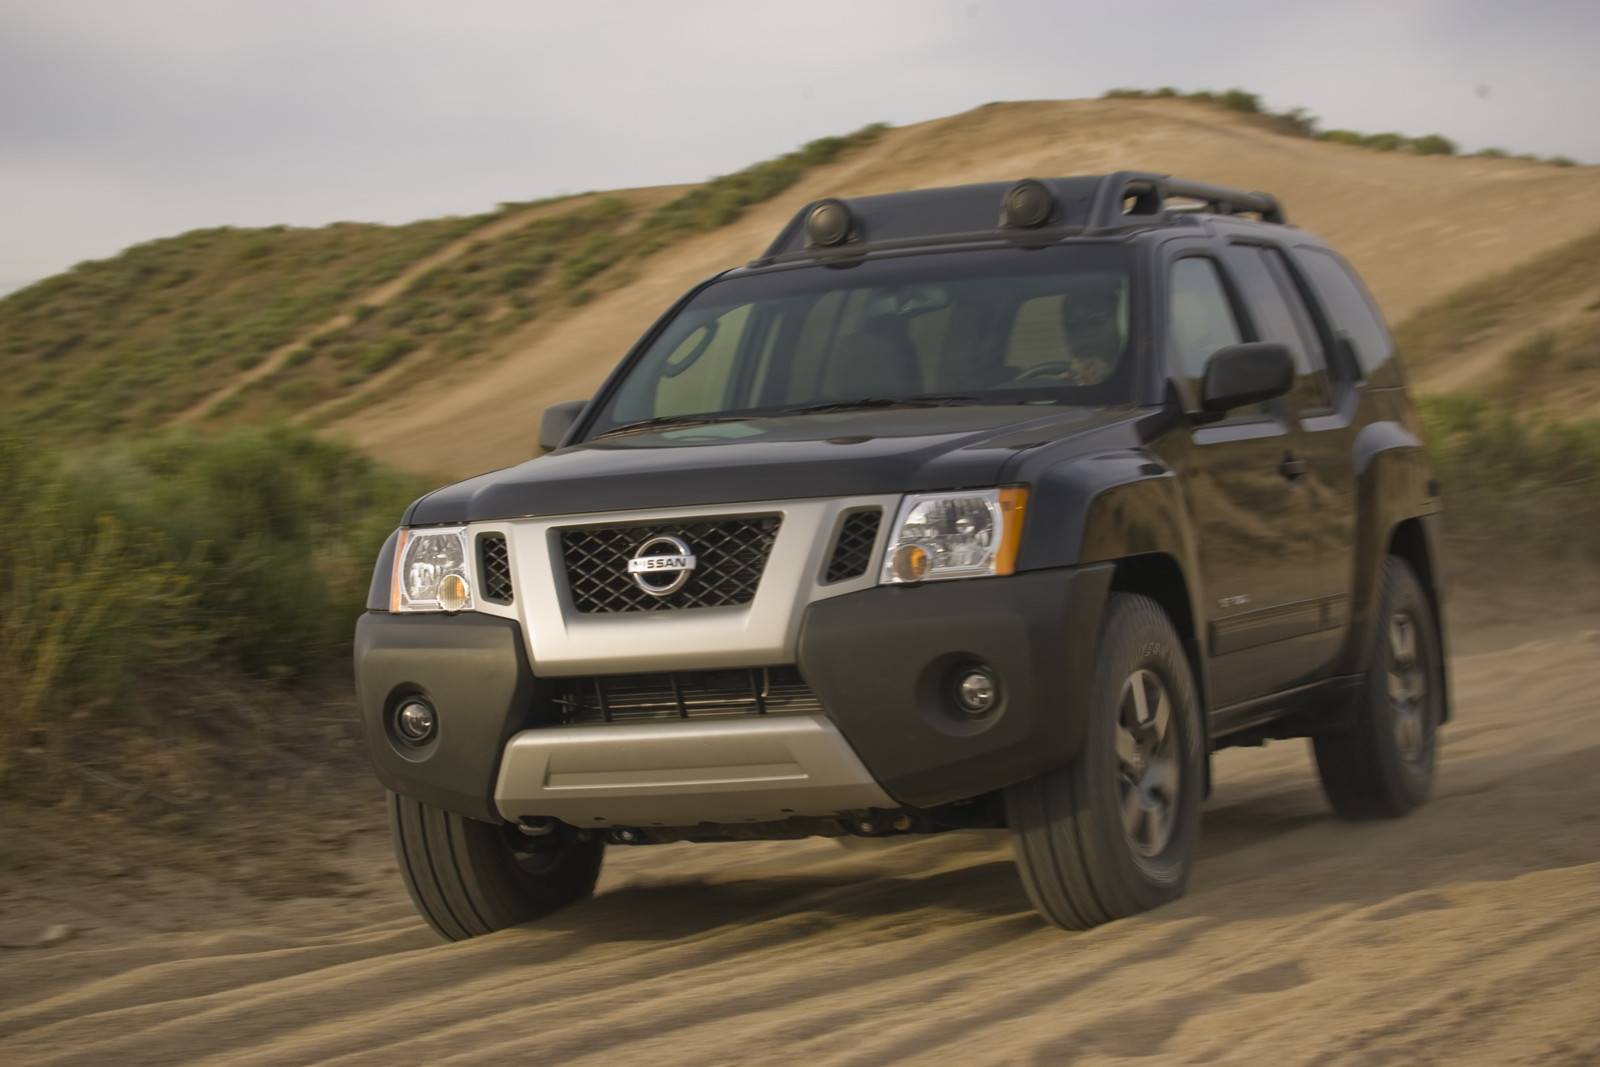 2010 nissan xterra review ratings specs prices and photos the car connection 2010 nissan xterra review ratings